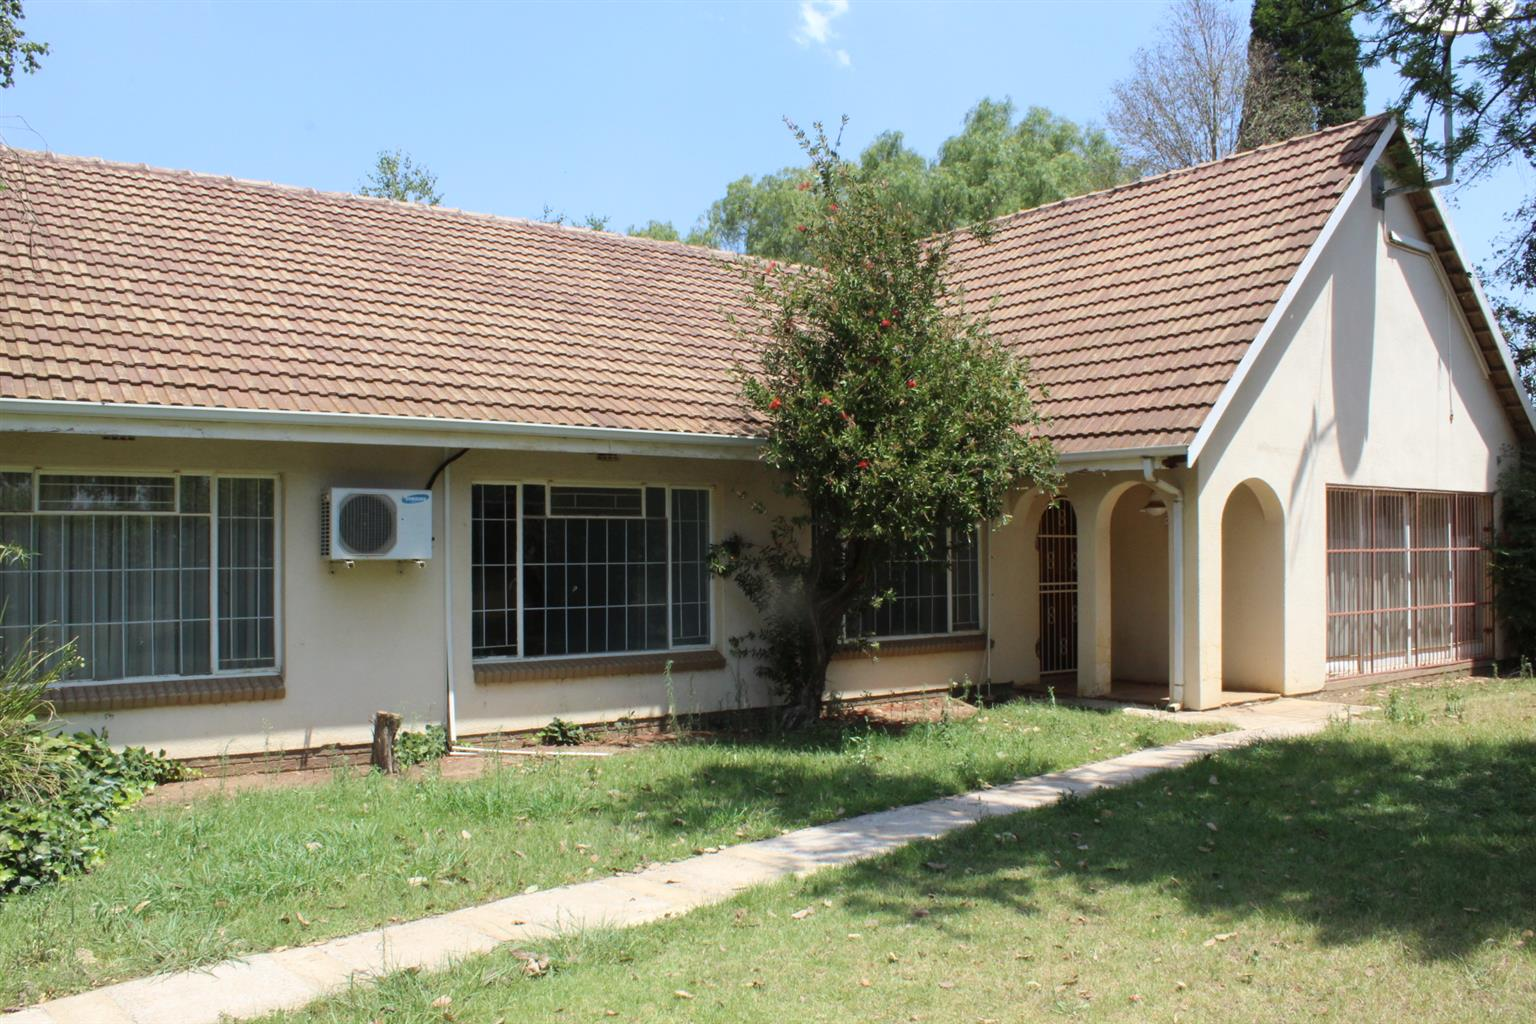 BENONI ON 1.55 Ha-MASSIVE WORKSHOP/FACTOORY (800 SqM PLUS) 3 PHAE & BOREHOLE-LAND FULLY FENCED-FLOODLIGHTS-ALSO CAMERAS ETC